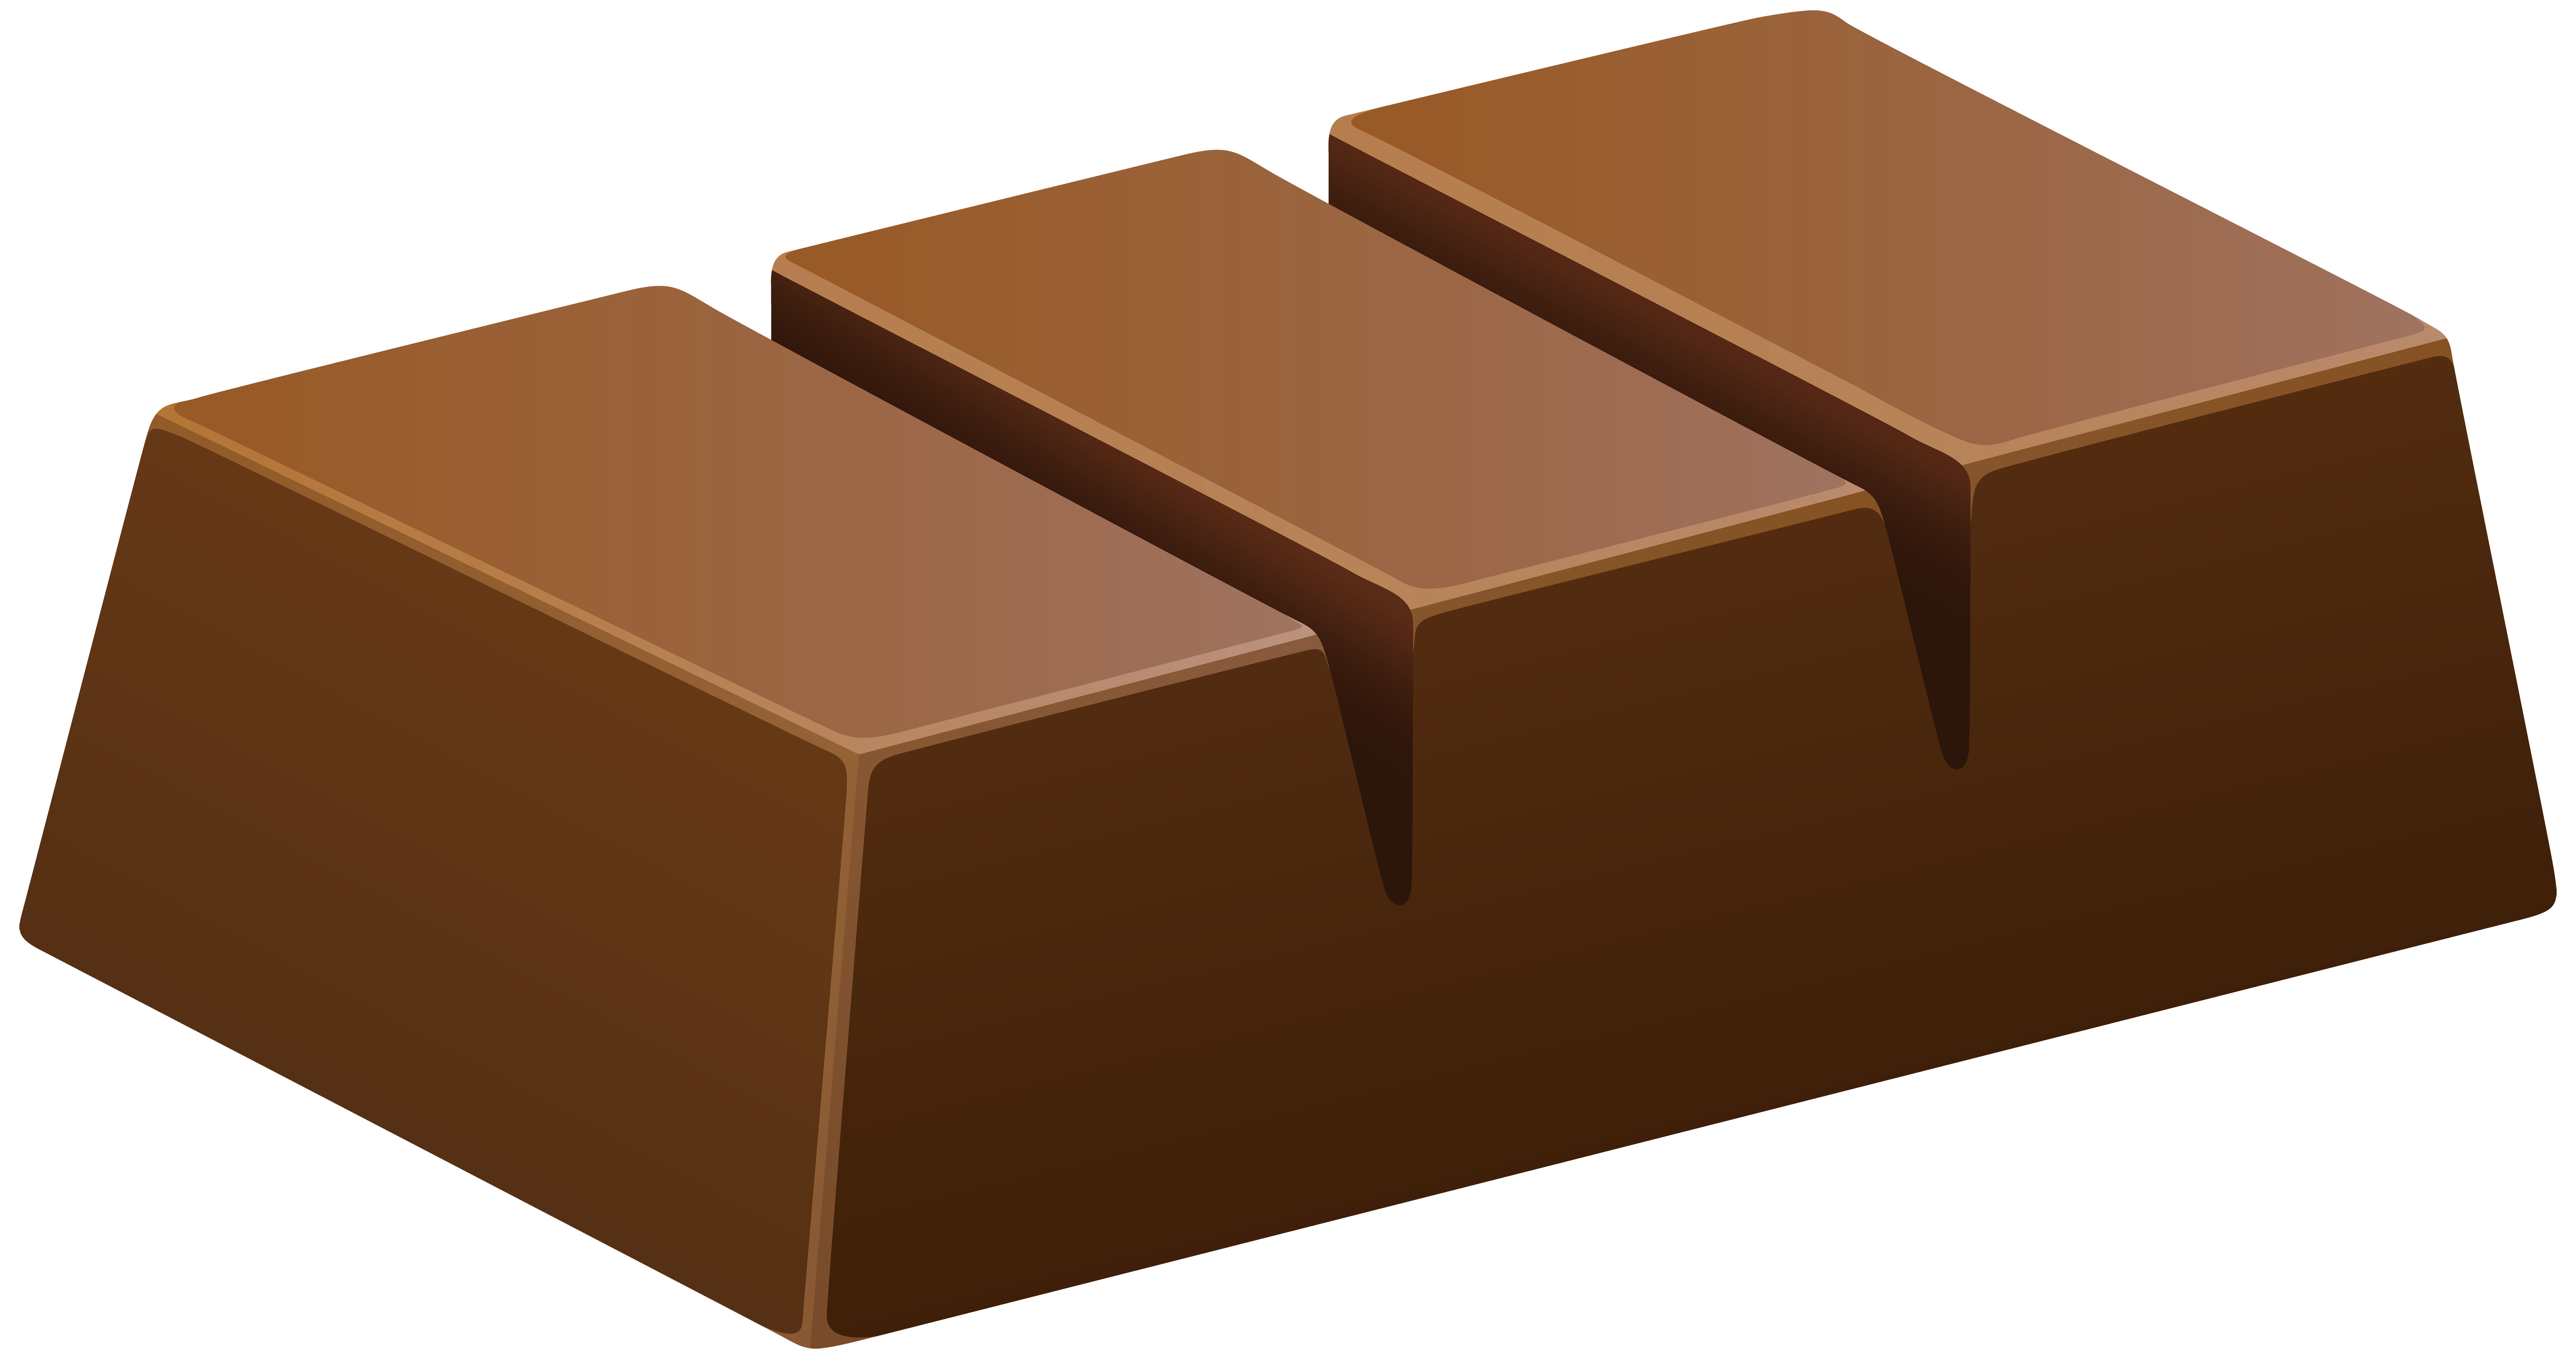 Chocolate Bar Clipart Png.